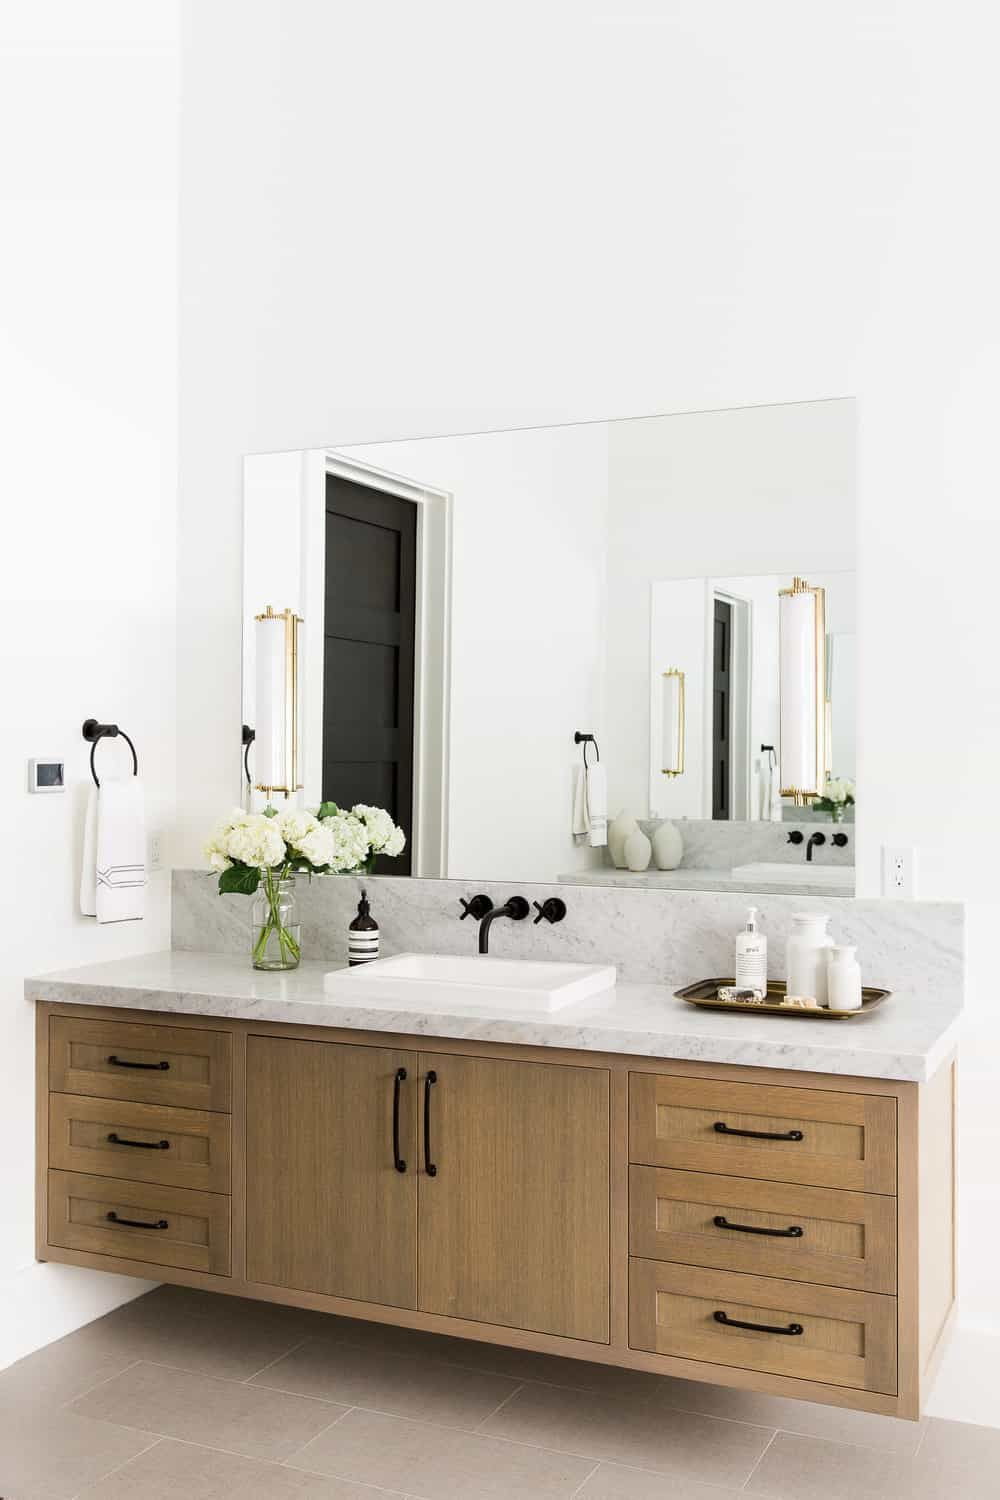 top 35 Pinterest bathroom pins of 2016 | Modern bathroom ...